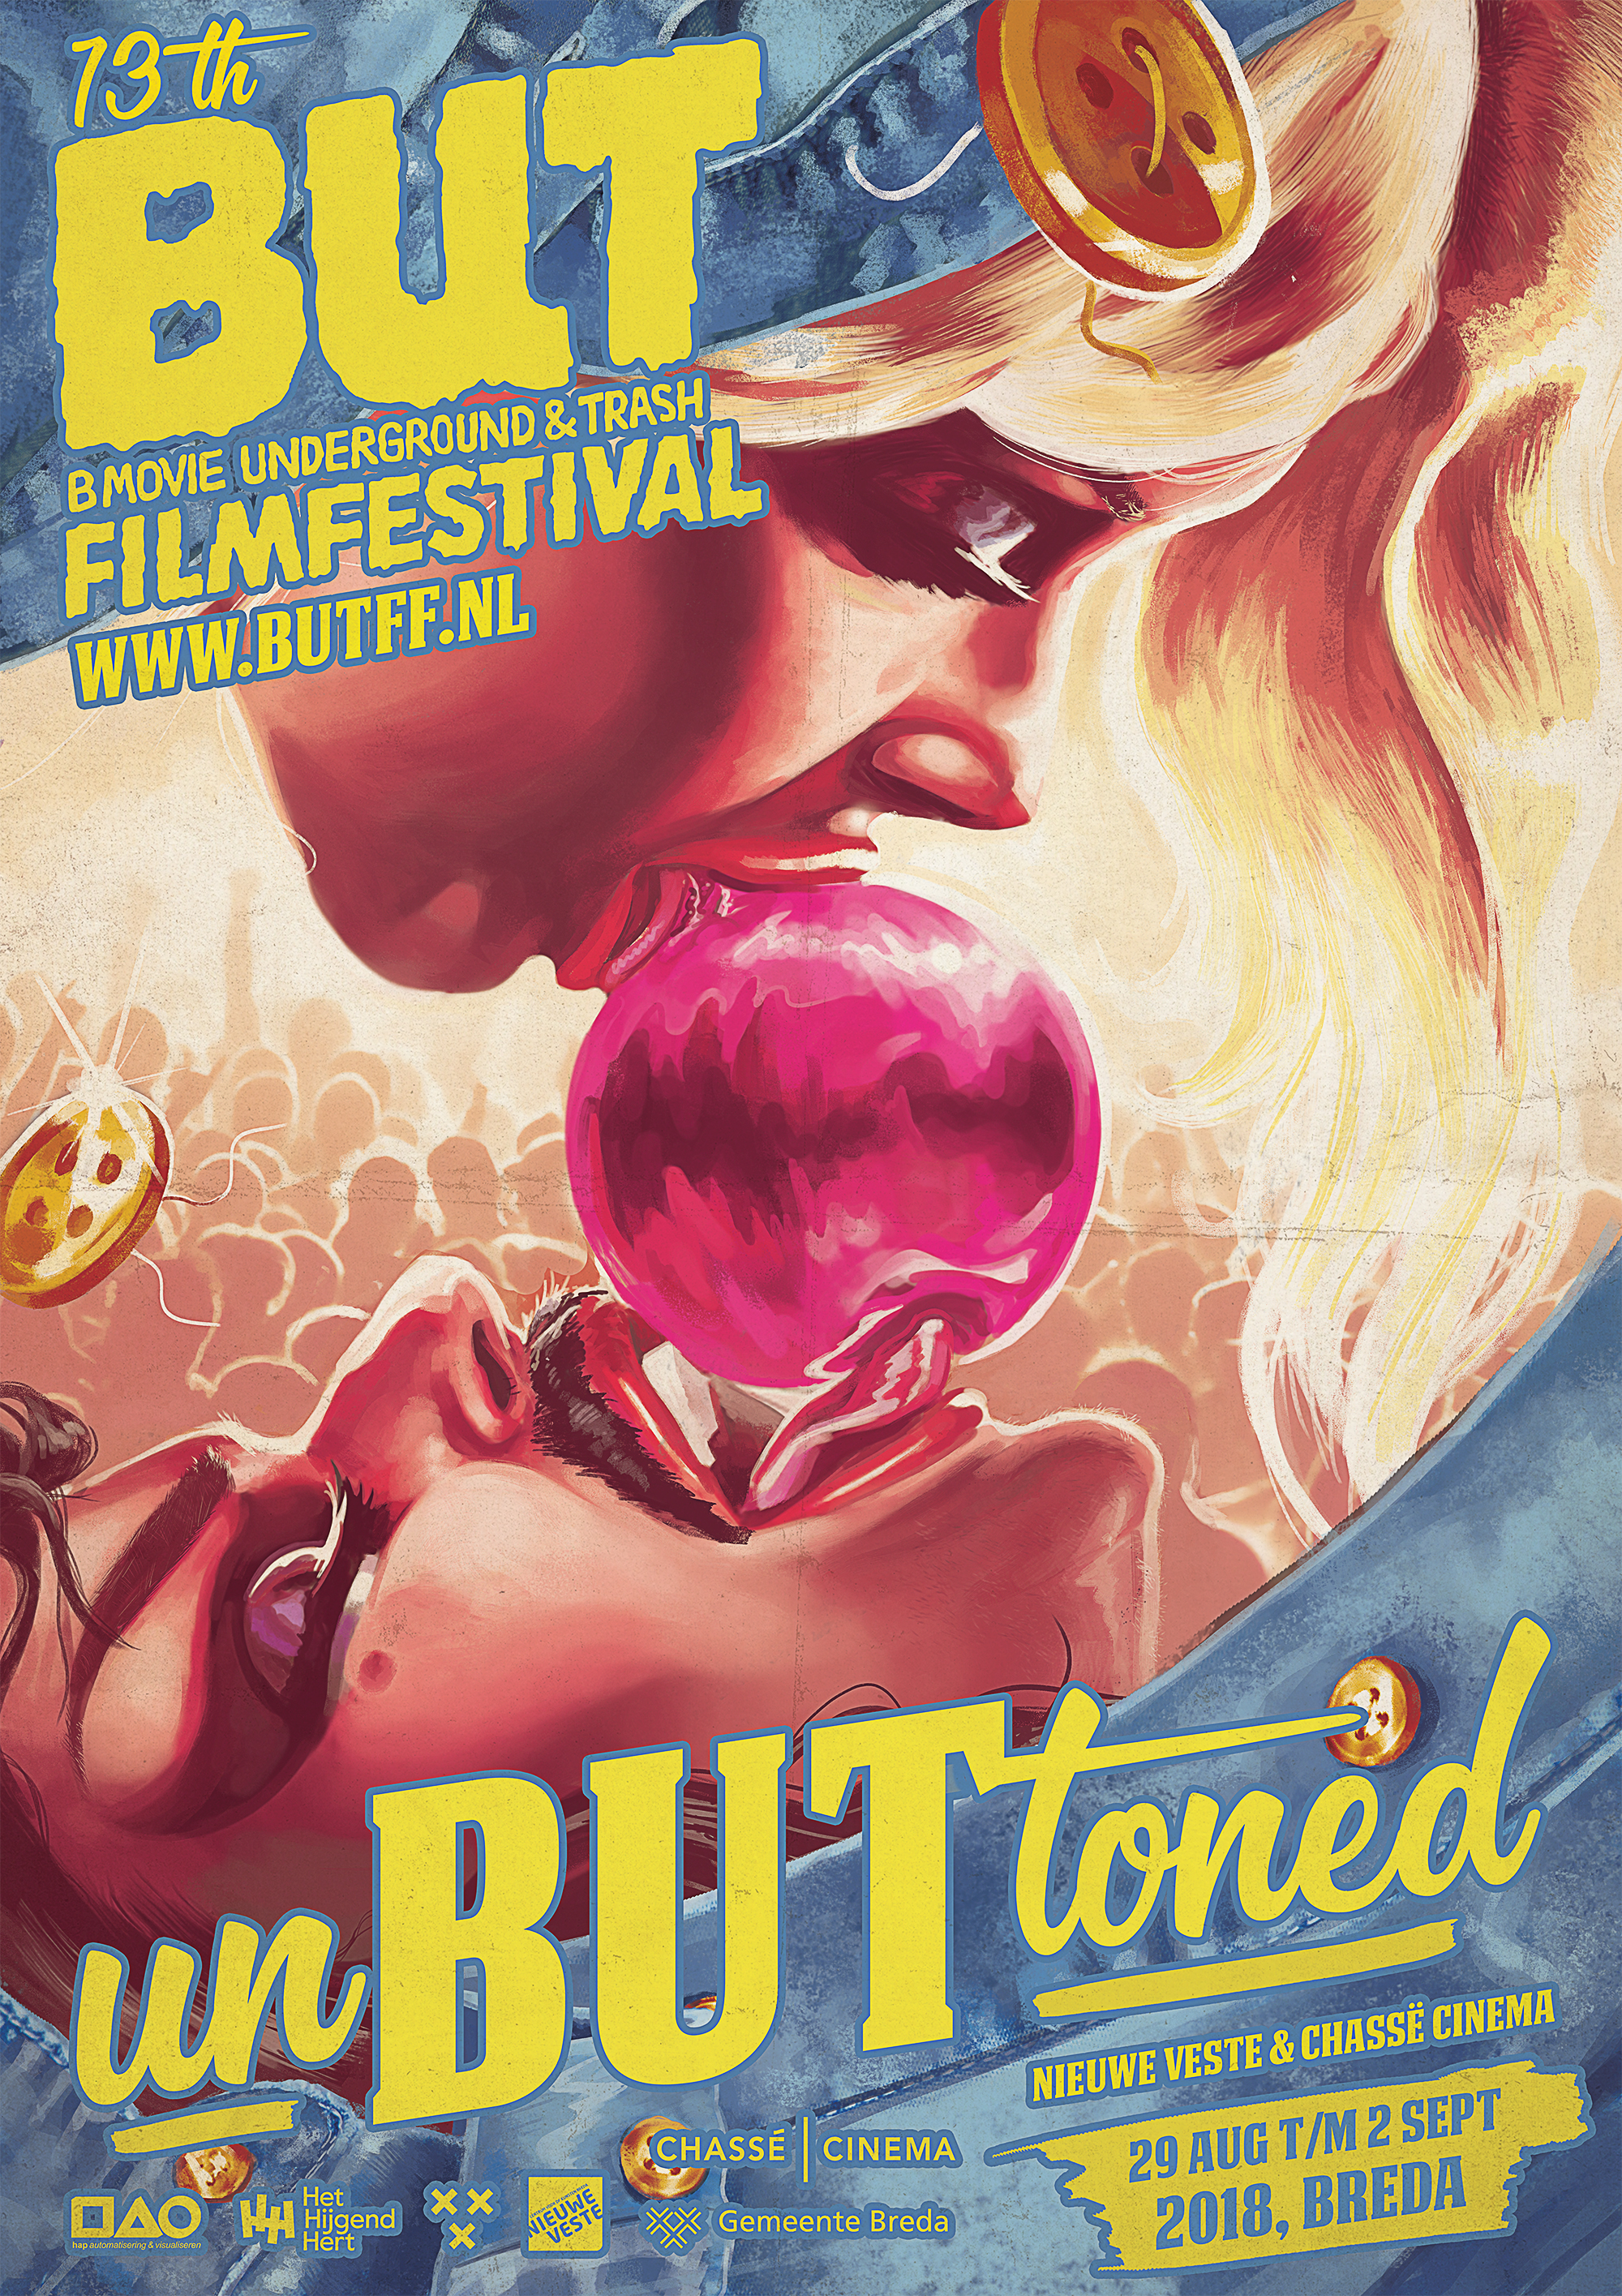 BUT Film Festival 2018UNBUTTONED - After having worked for BUTFF for several years, seeing the amazing illustrated posters they would use, I was given the opportunity to create one myself. With this year's theme being an ode to the sexploitation genre, featuring highlights of queer and soft-porn films, my aim was to make a subtle yet sexually explosive image. For me, this poster also serves as an ode to the hand-painted posters that would hang in the dark alley's of the 110th street of New York in the 60's & 70's.www.butff.nl